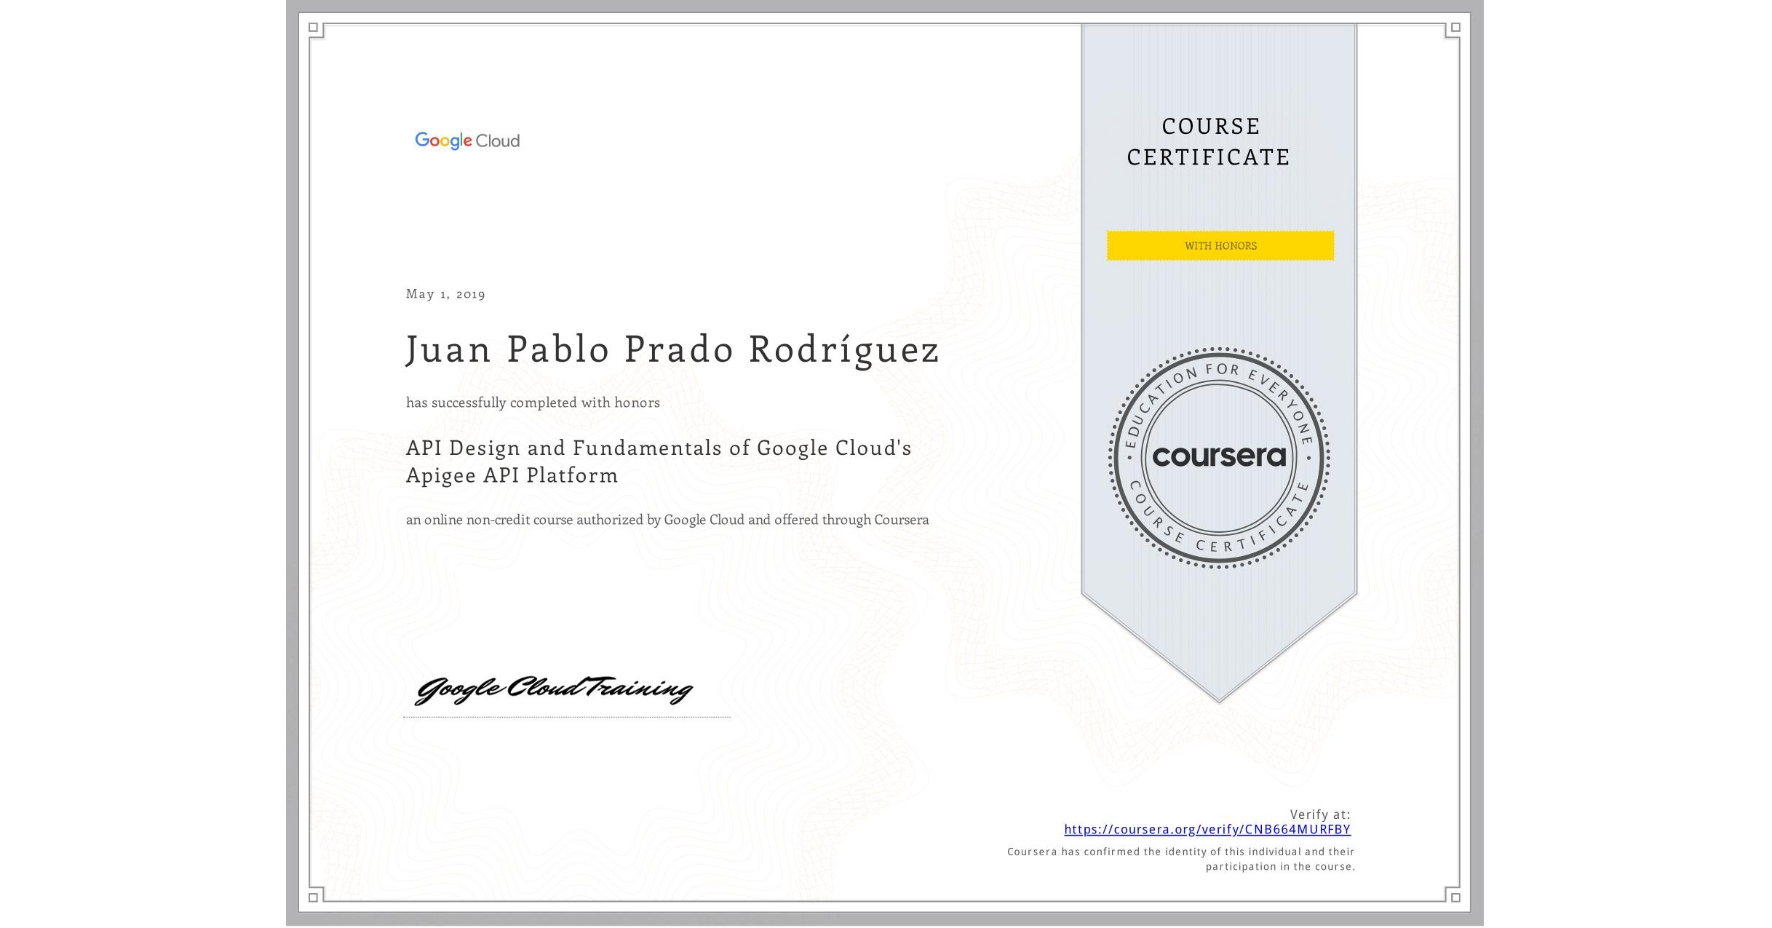 View certificate for Juan Pablo Prado Rodríguez, API Design and Fundamentals of Google Cloud's Apigee API Platform, an online non-credit course authorized by Google Cloud and offered through Coursera